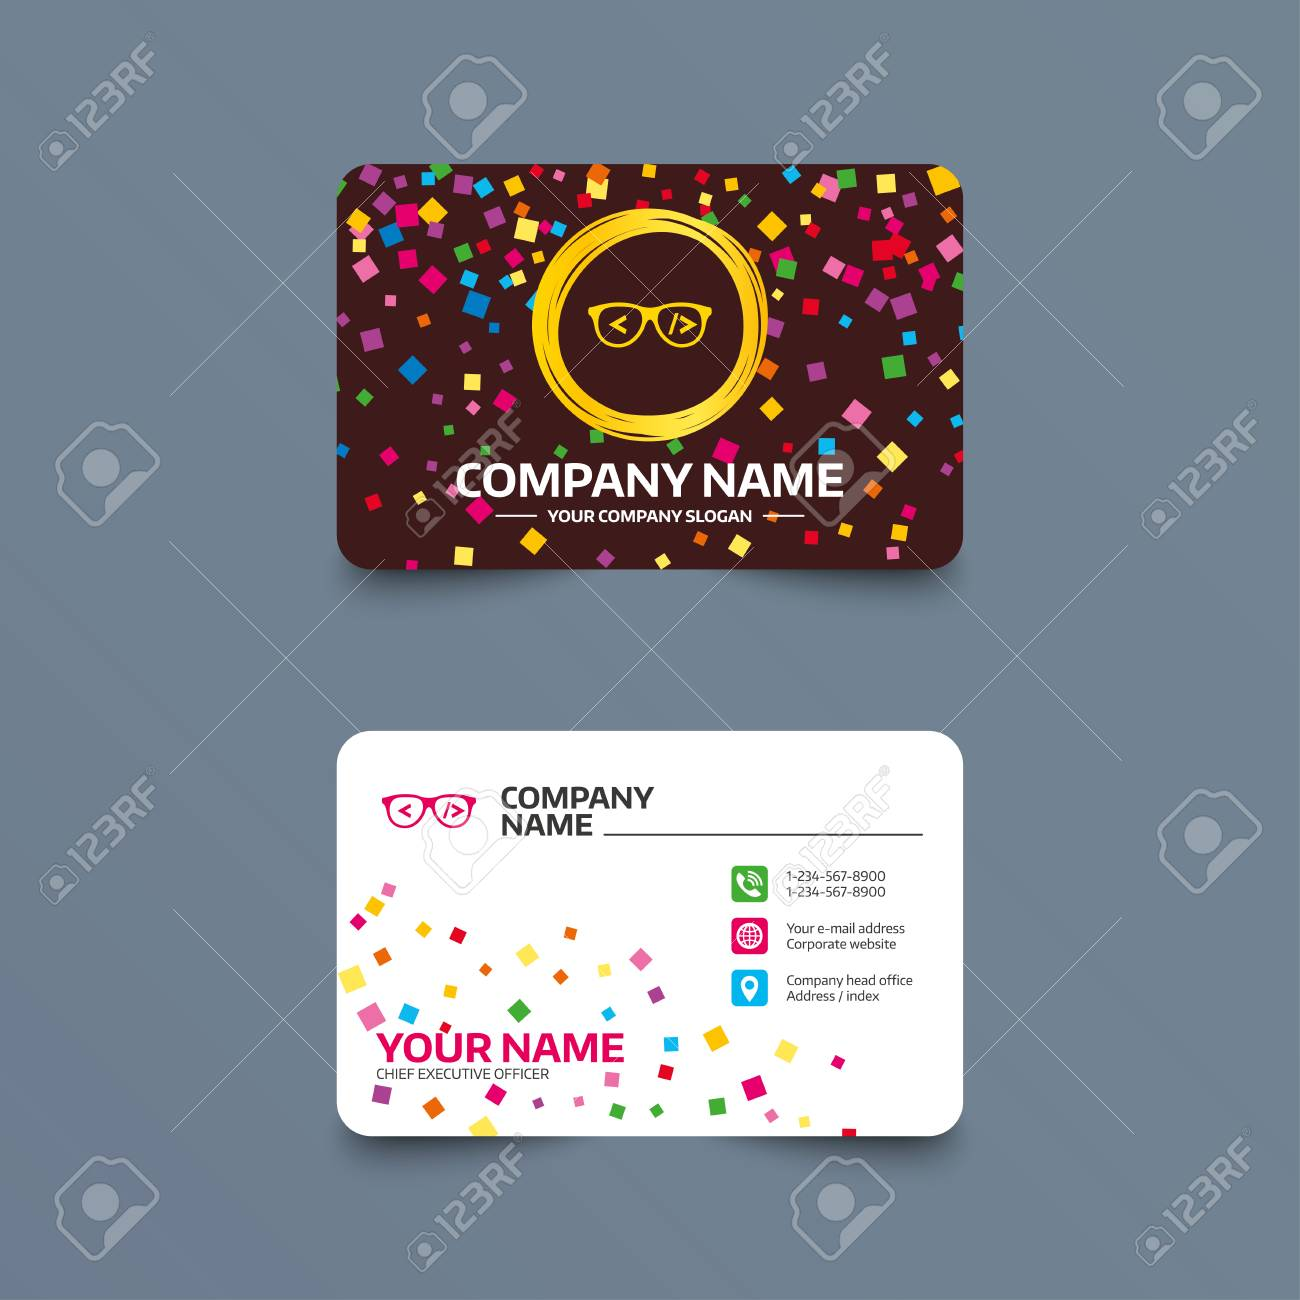 business card template with confetti pieces coder sign icon